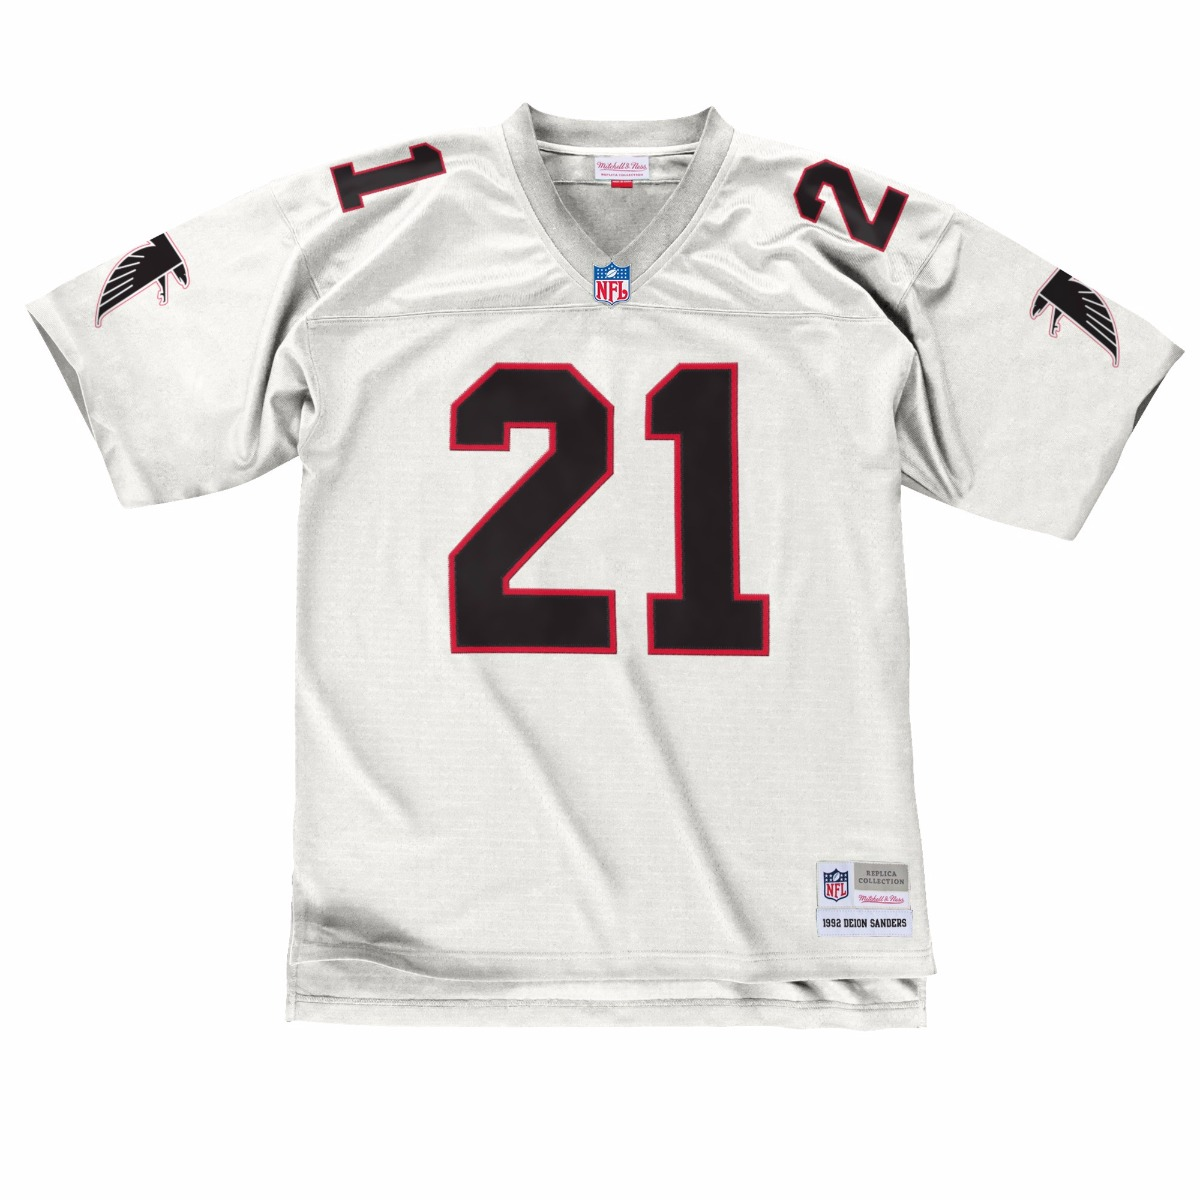 NFL-Mitchell-amp-Ness-Throwback-Player-Road-White-Legacy-Jersey-Collection-Men-039-s thumbnail 19